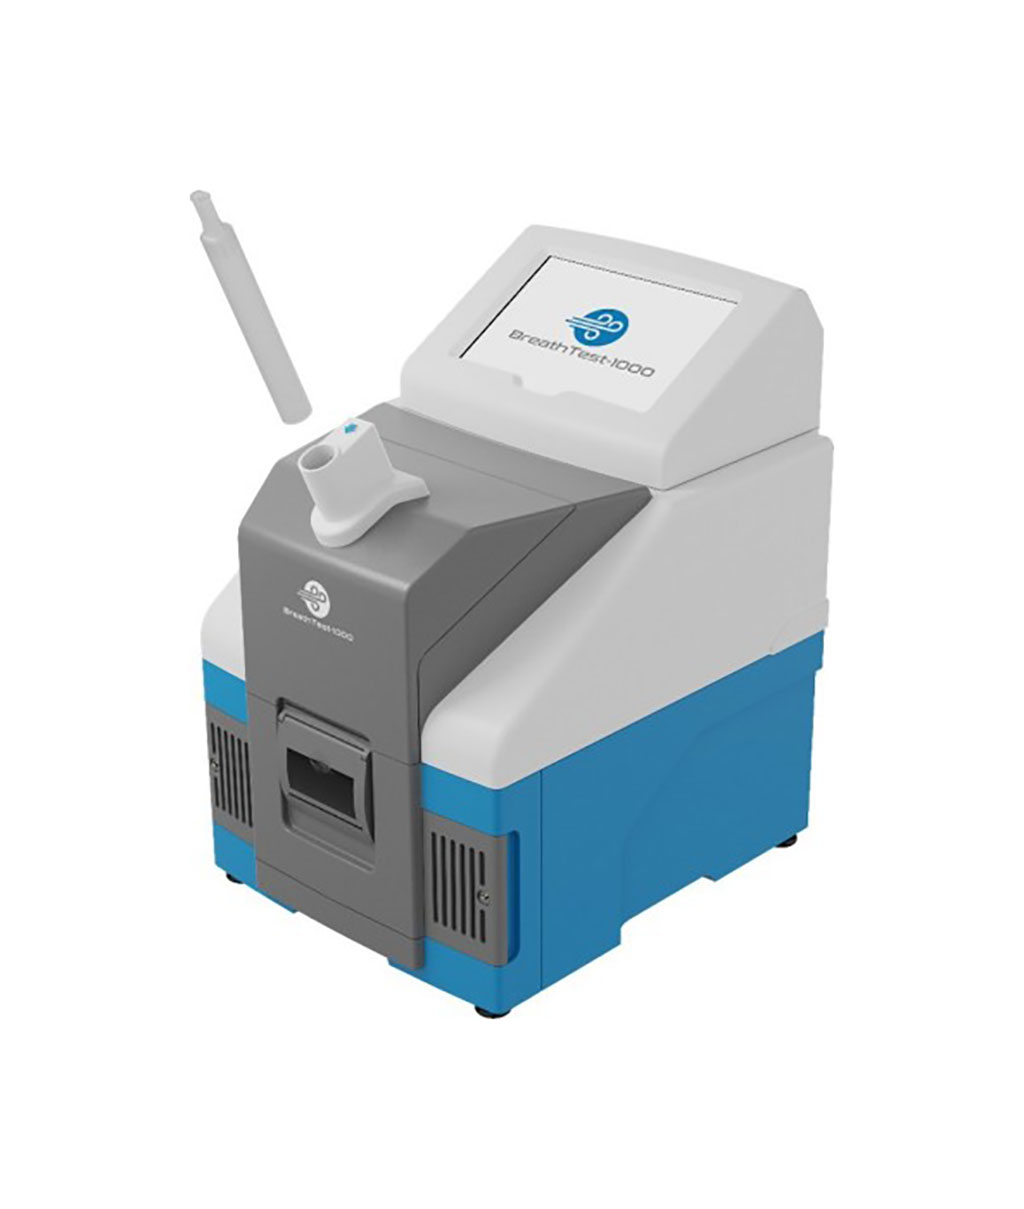 Image: BreathTest-1000™ mass spectrometer (Photo courtesy of Business Wire)